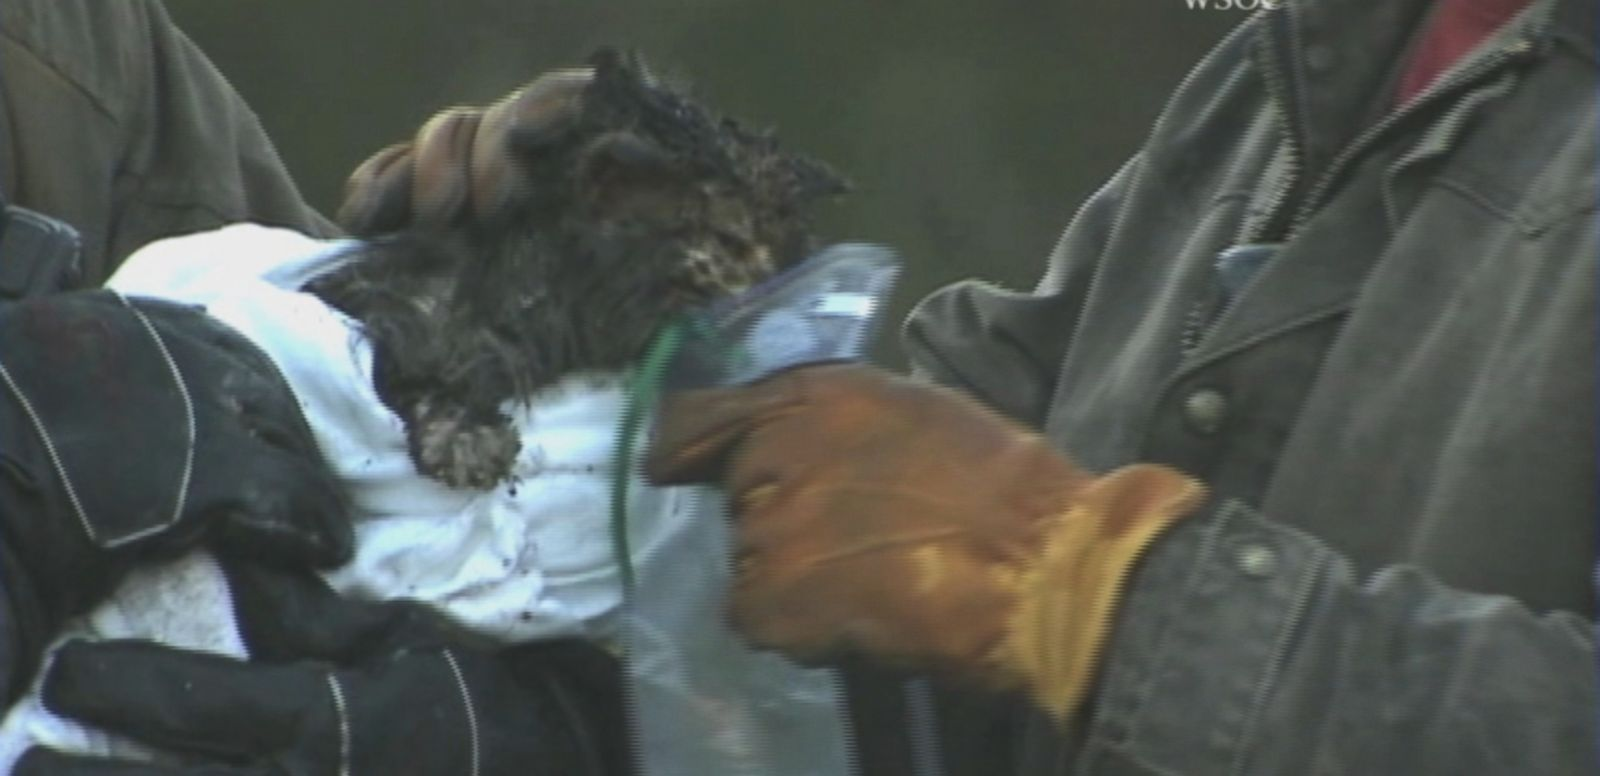 VIDEO: Rescue crews managed to capture the cat that was trapped in the wall of a burning home for three hours.